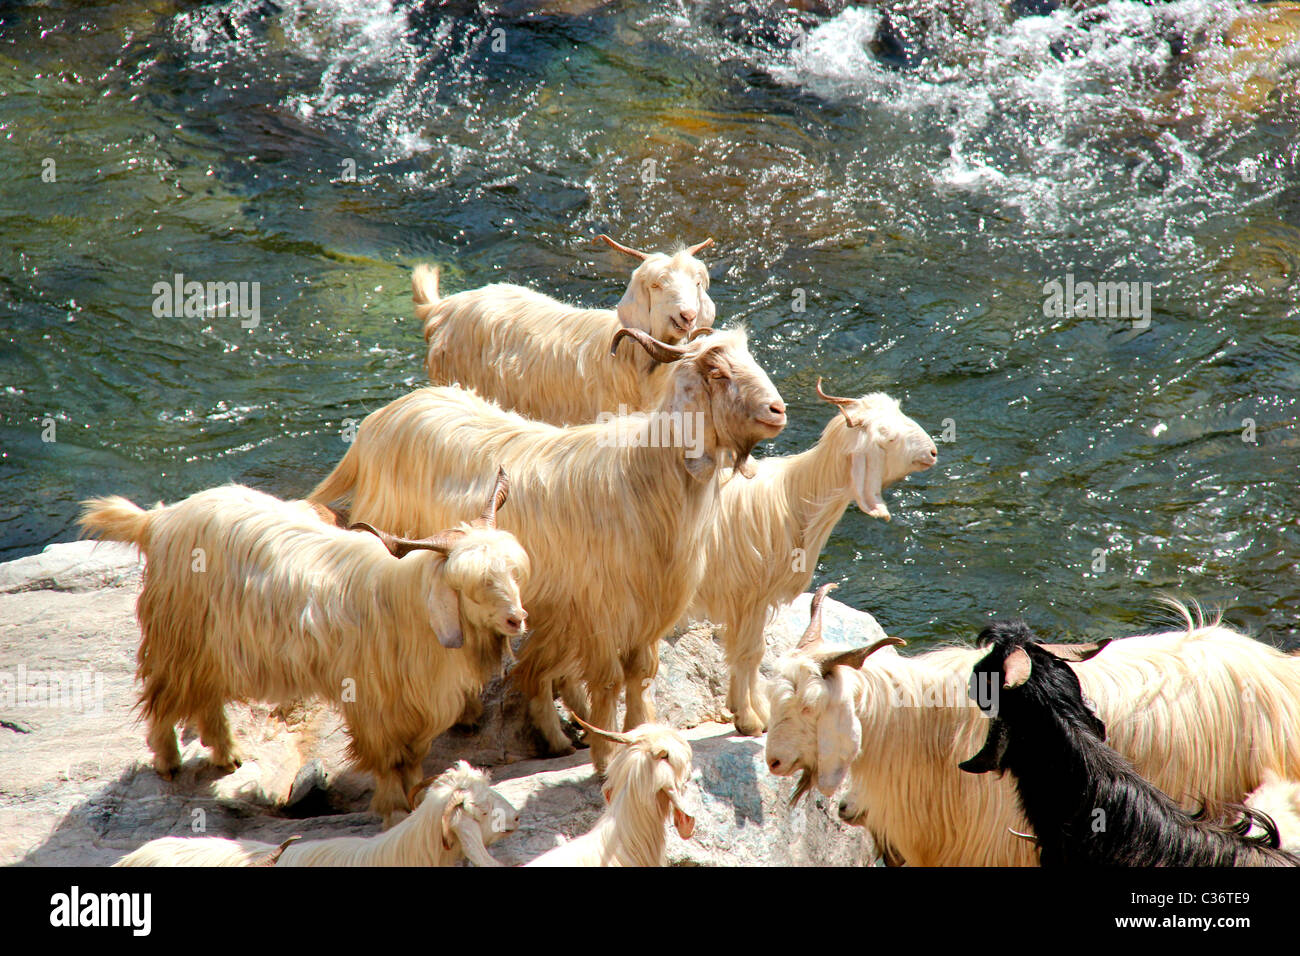 Mountain goats in Himachal Pradesh, India - Stock Image